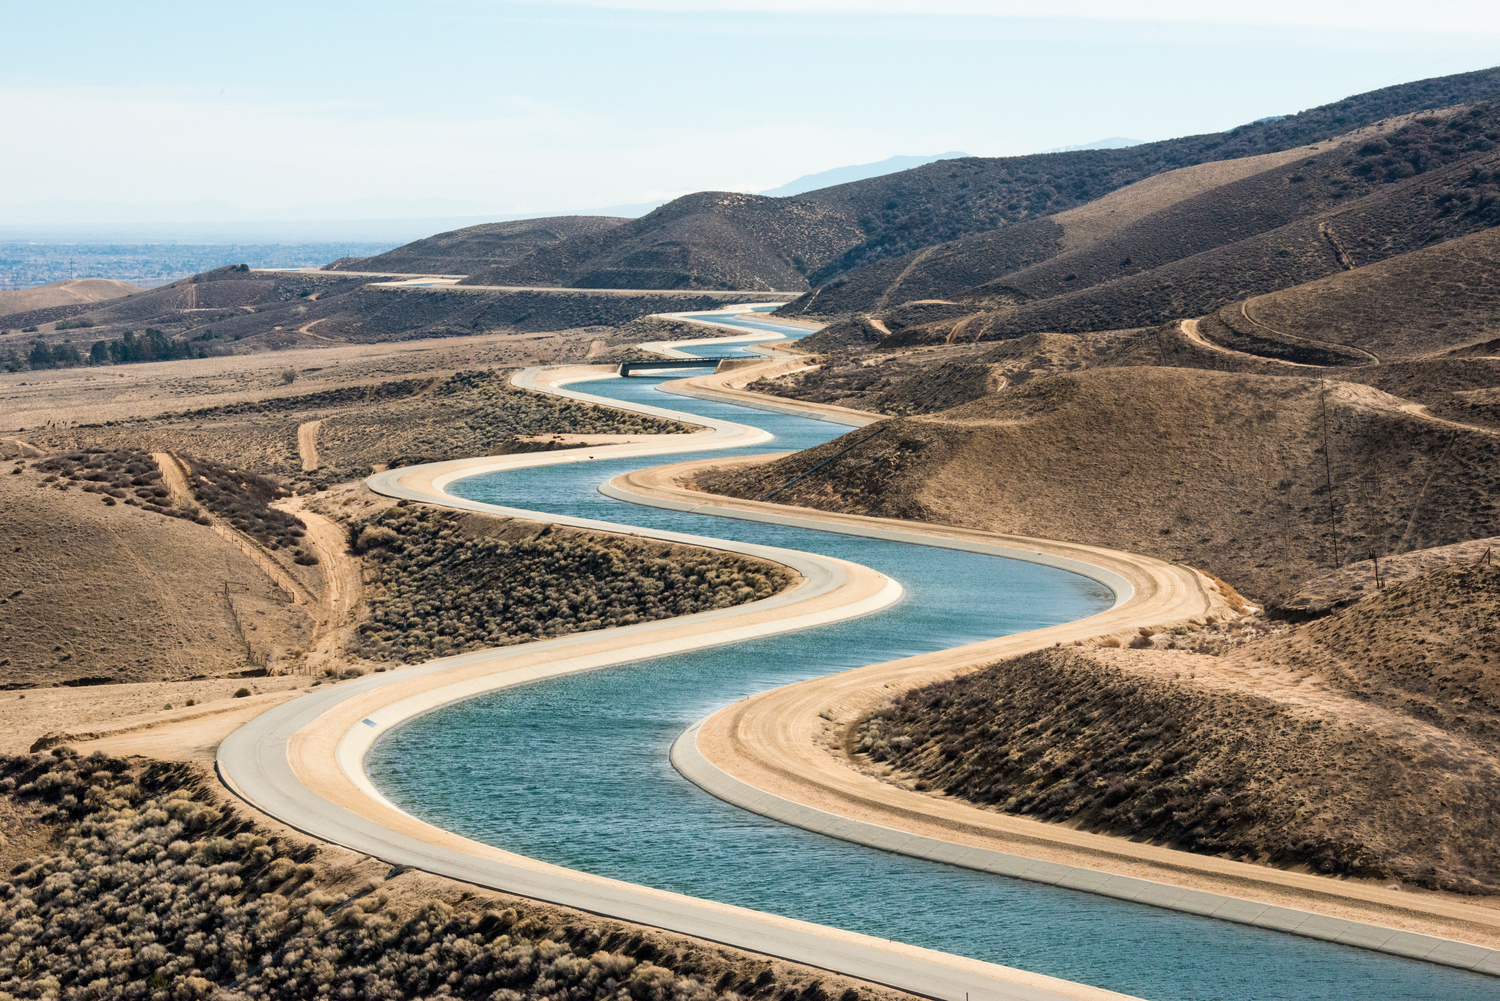 Winter storm water no cure for California droughts